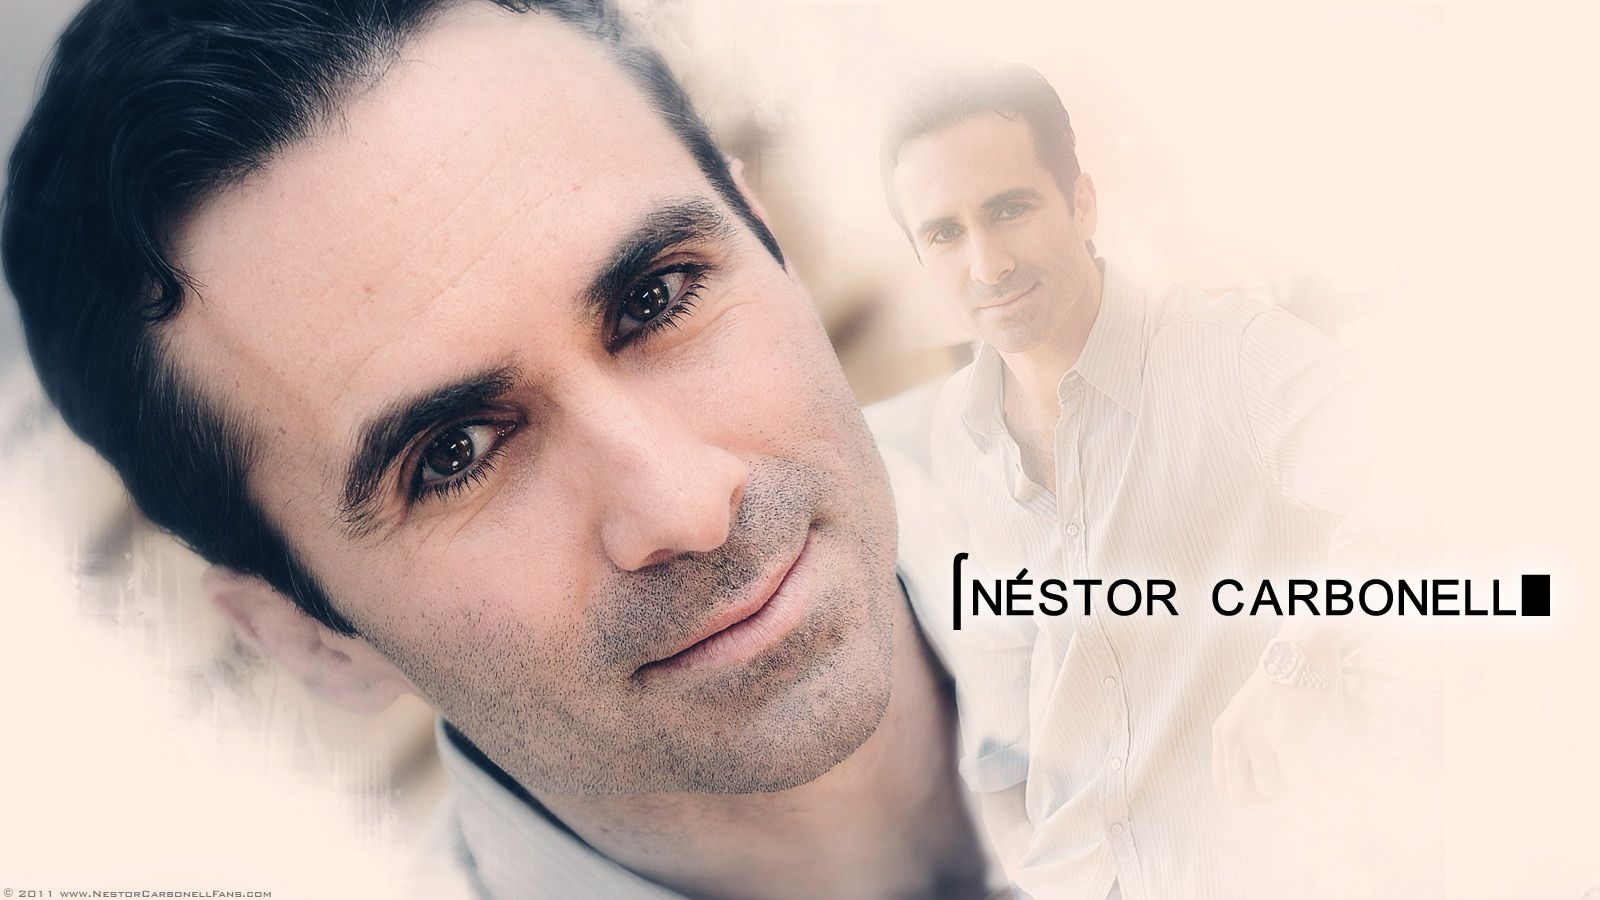 Image detail for -Two new wallpapers of Nestor Carbonell ...